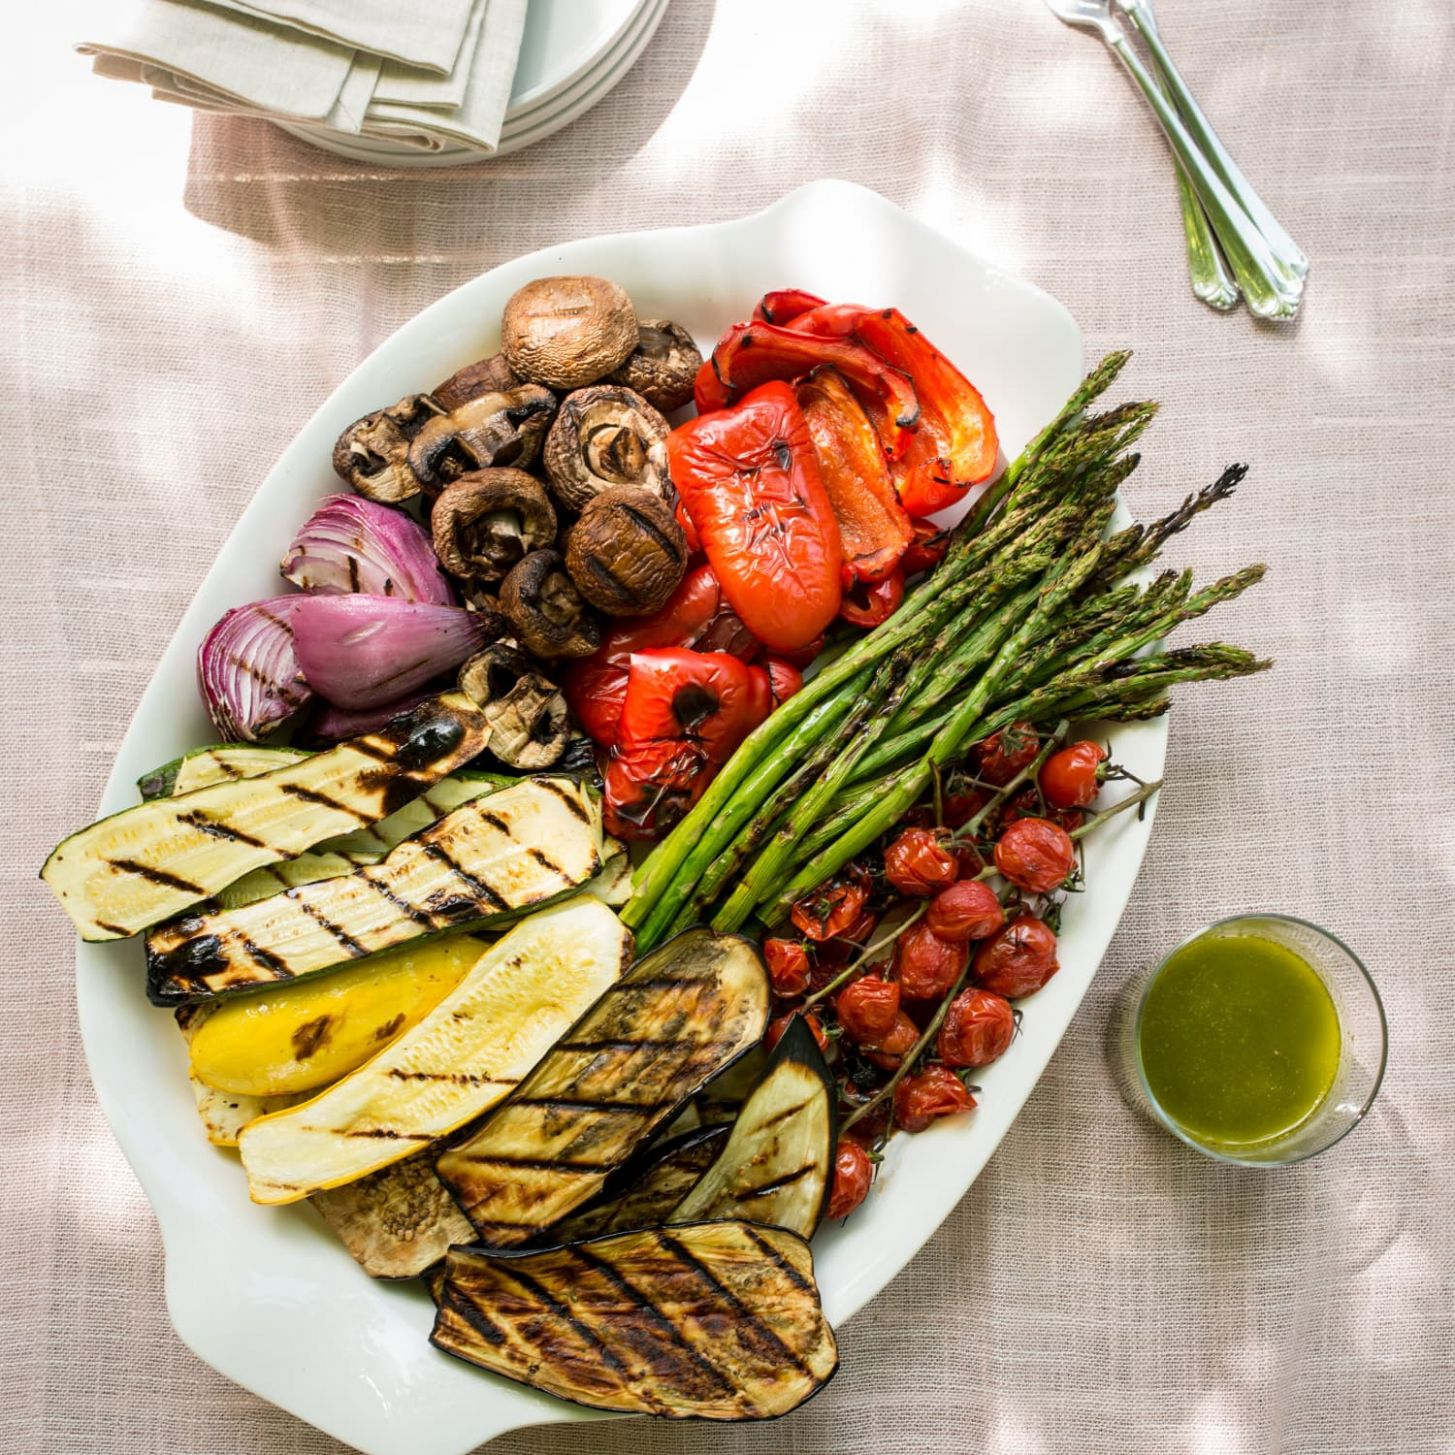 How to Grill Any Vegetable - Vegetable Recipes Grill